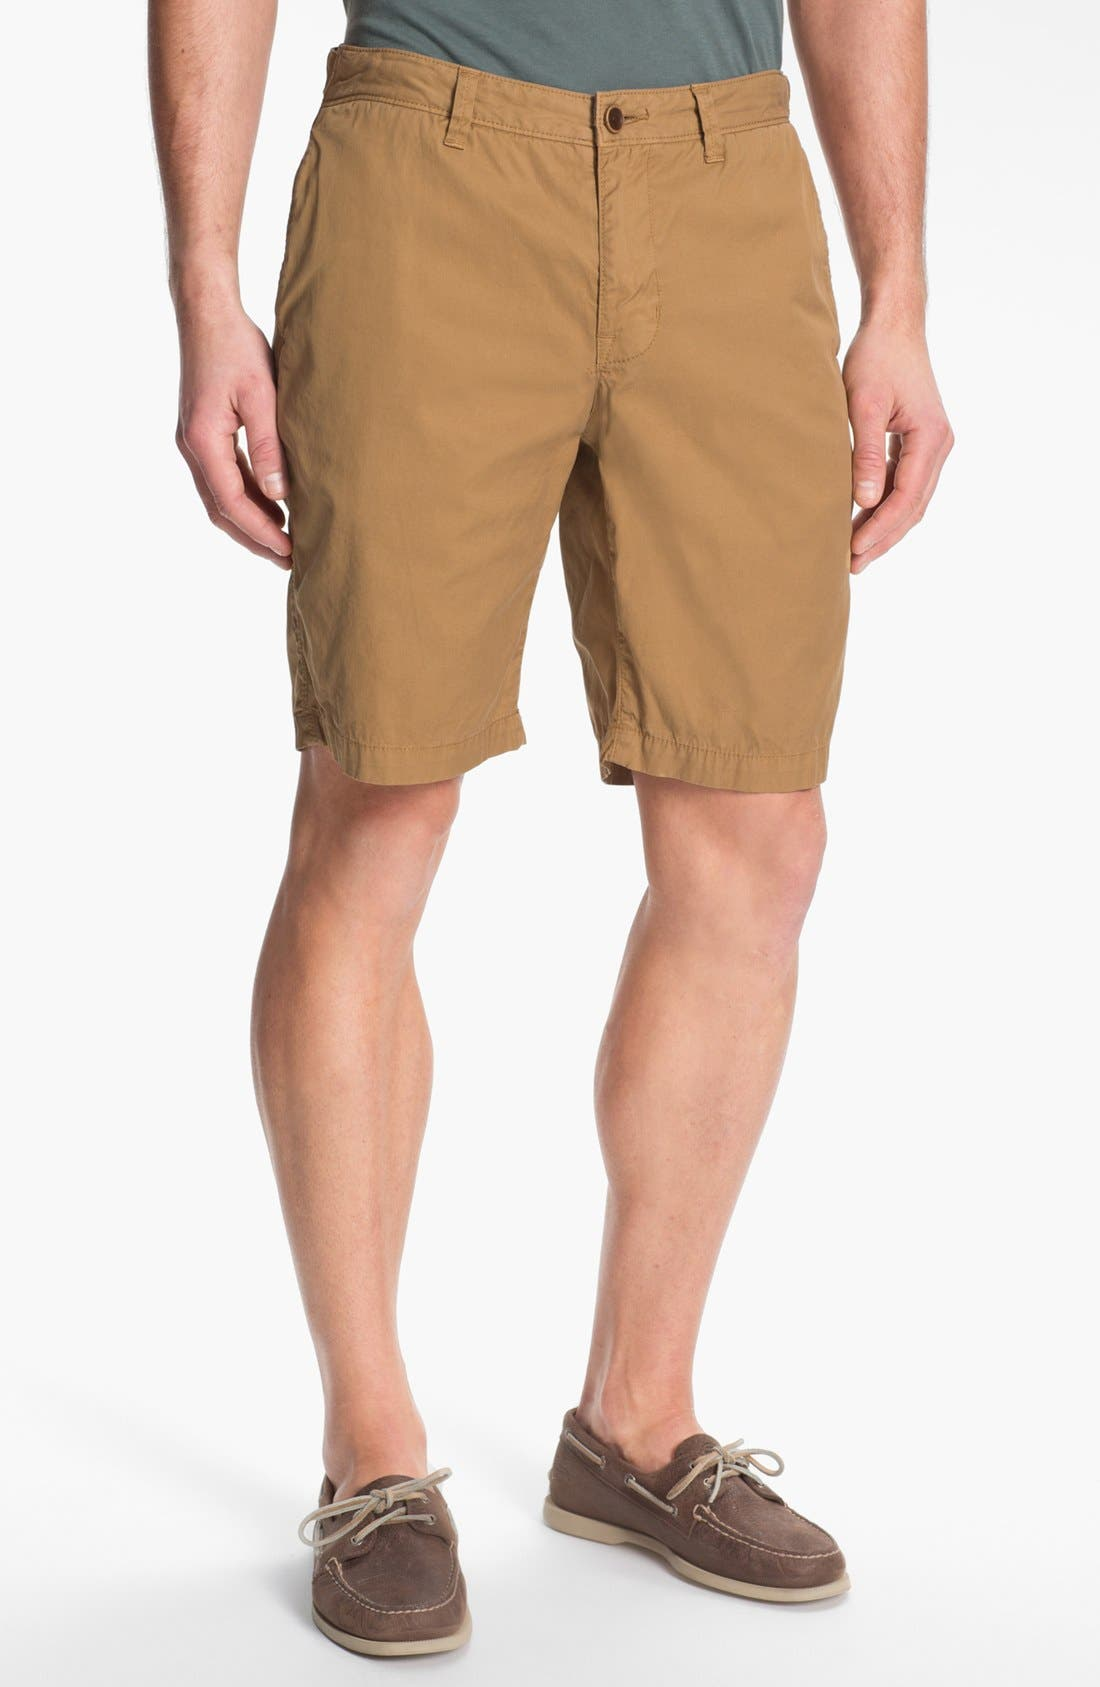 Alternate Image 1 Selected - Lucky Brand 'Pasadena' Shorts